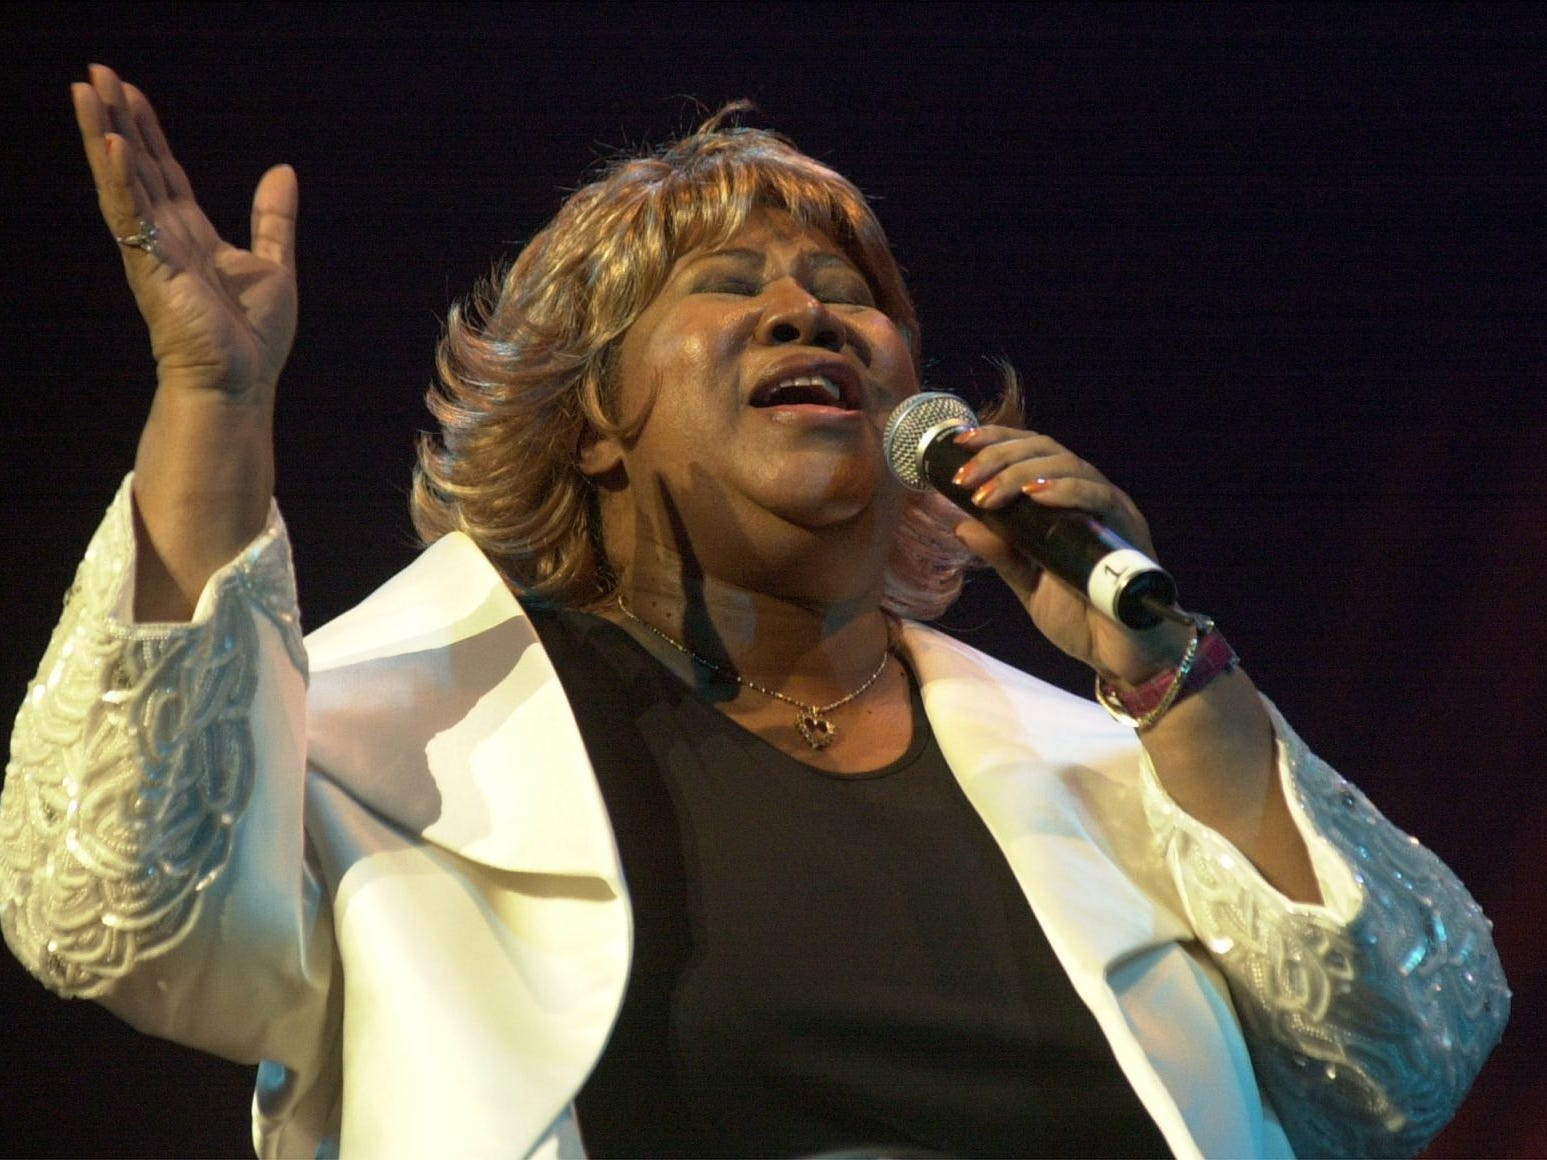 Singer Aretha Franklin performs at the Fox Theater in Detroit during the Southern Christian Leadership Conference's Dr. Martin Luther King. Jr. day celebration on Monday, Jan. 21, 2002.